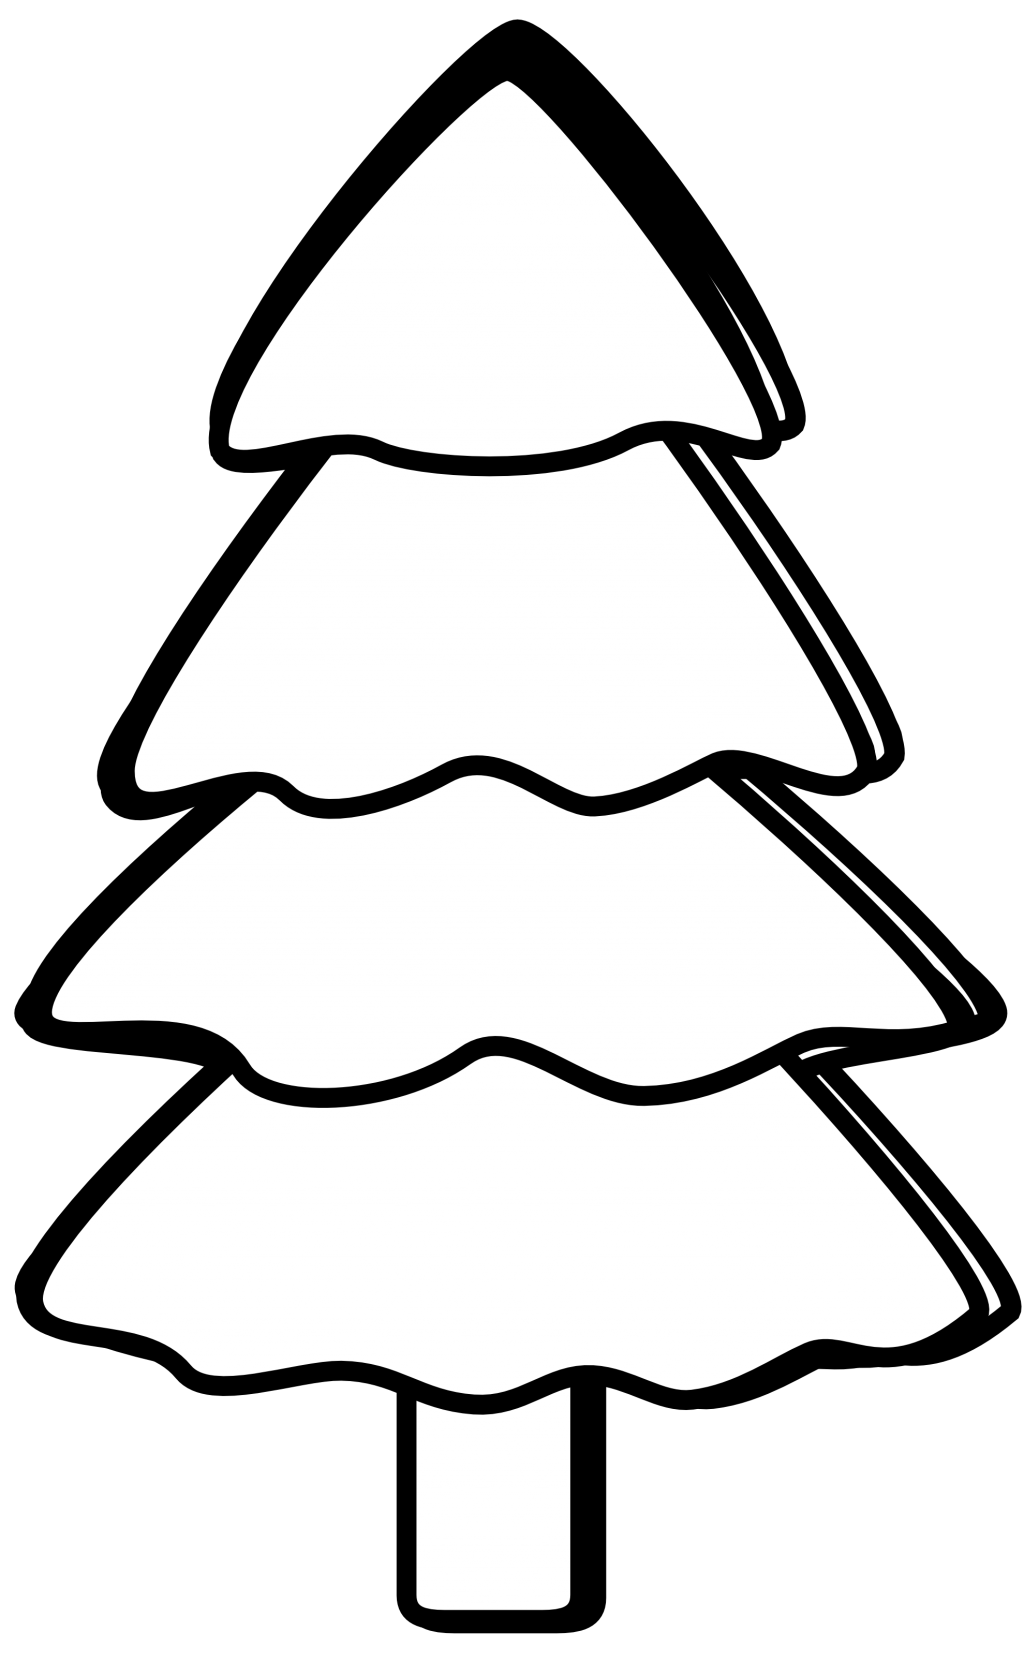 clip art royalty free download Baby nursery charming xmas. Clipart trees black and white